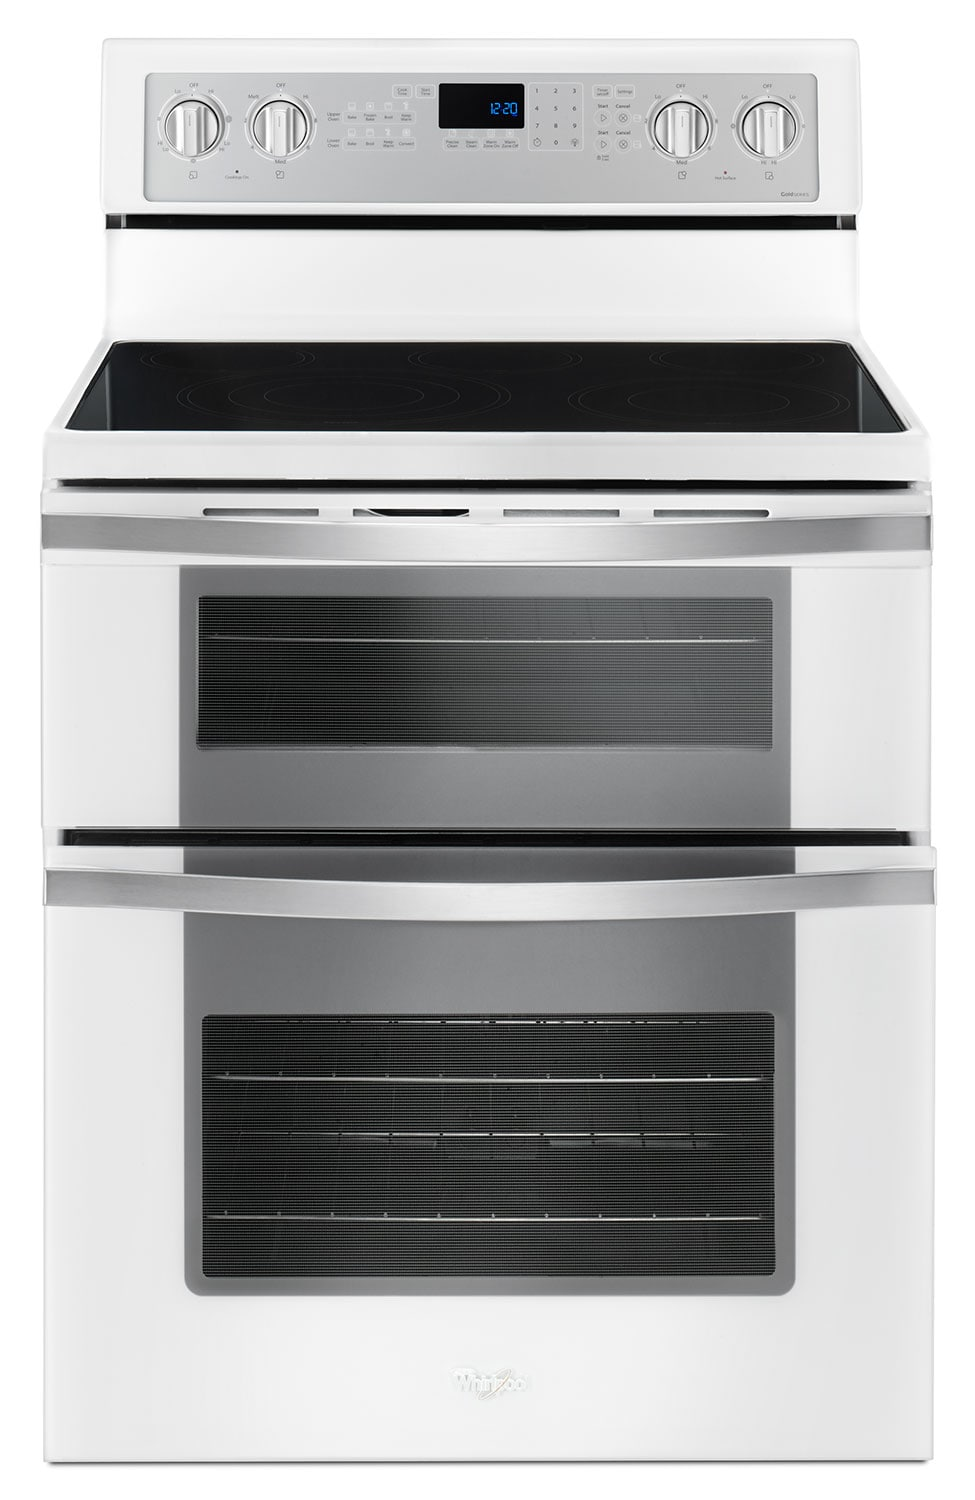 Cooking Products - Whirlpool White Electric Double Range (6.7 Cu. Ft.) - YWGE745C0FH